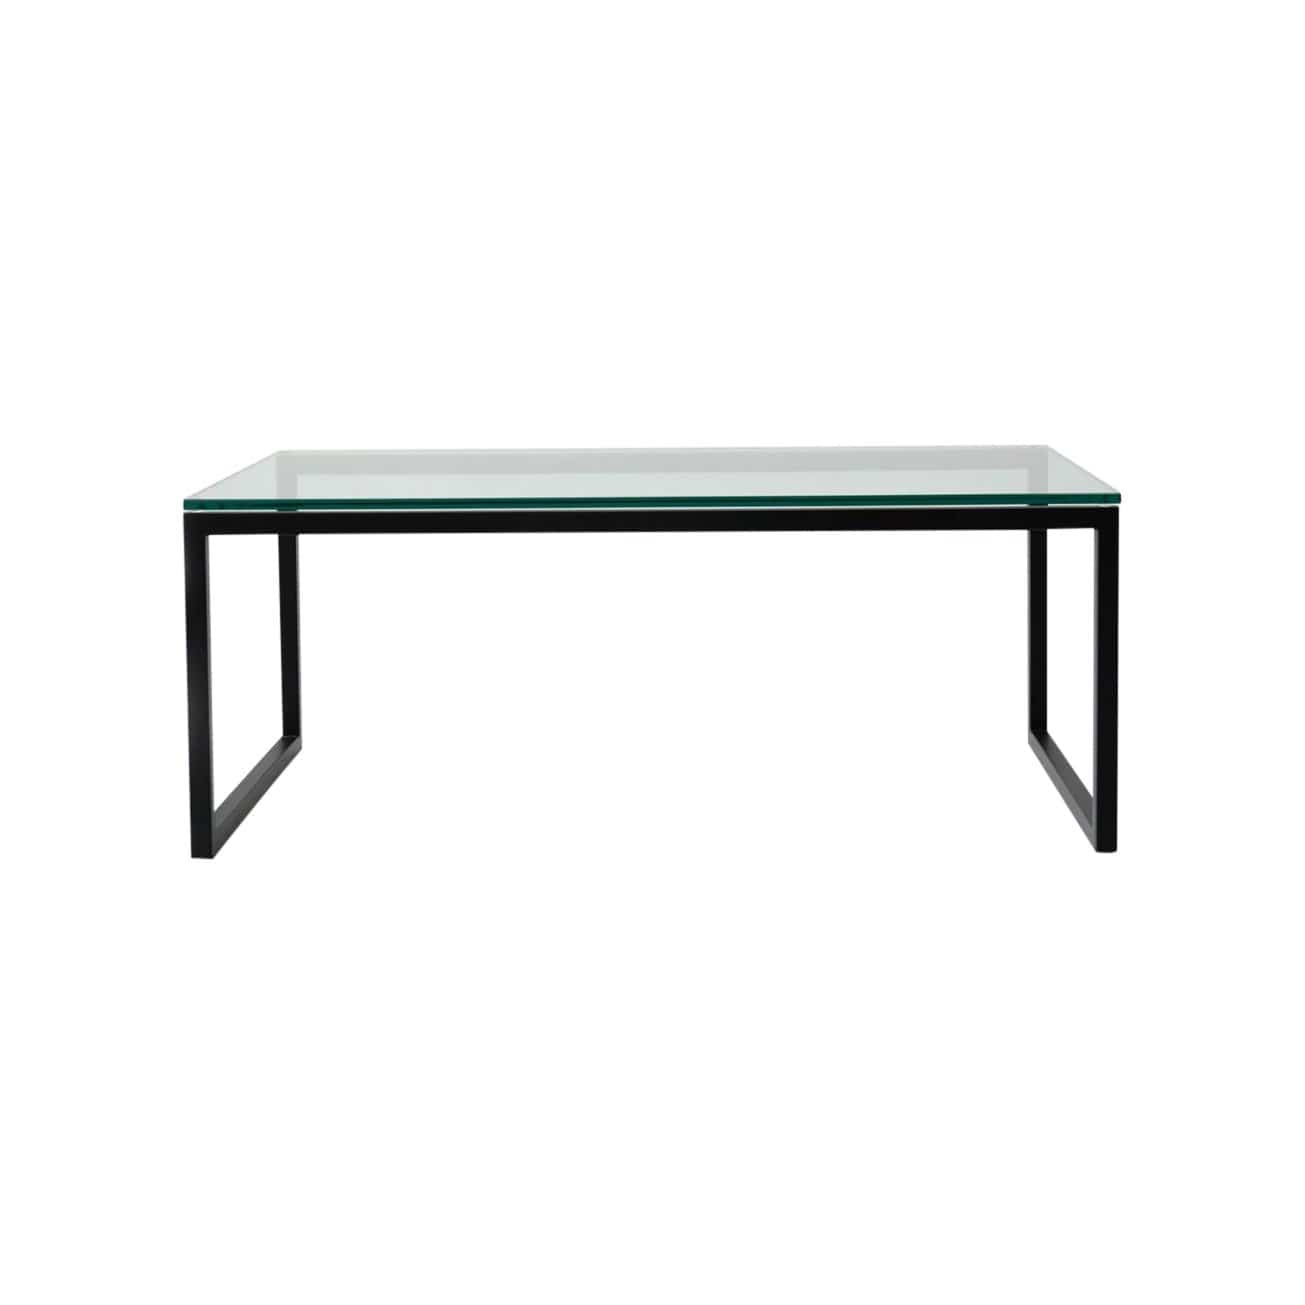 hollis+morris Furniture The Fort York Coffee Table